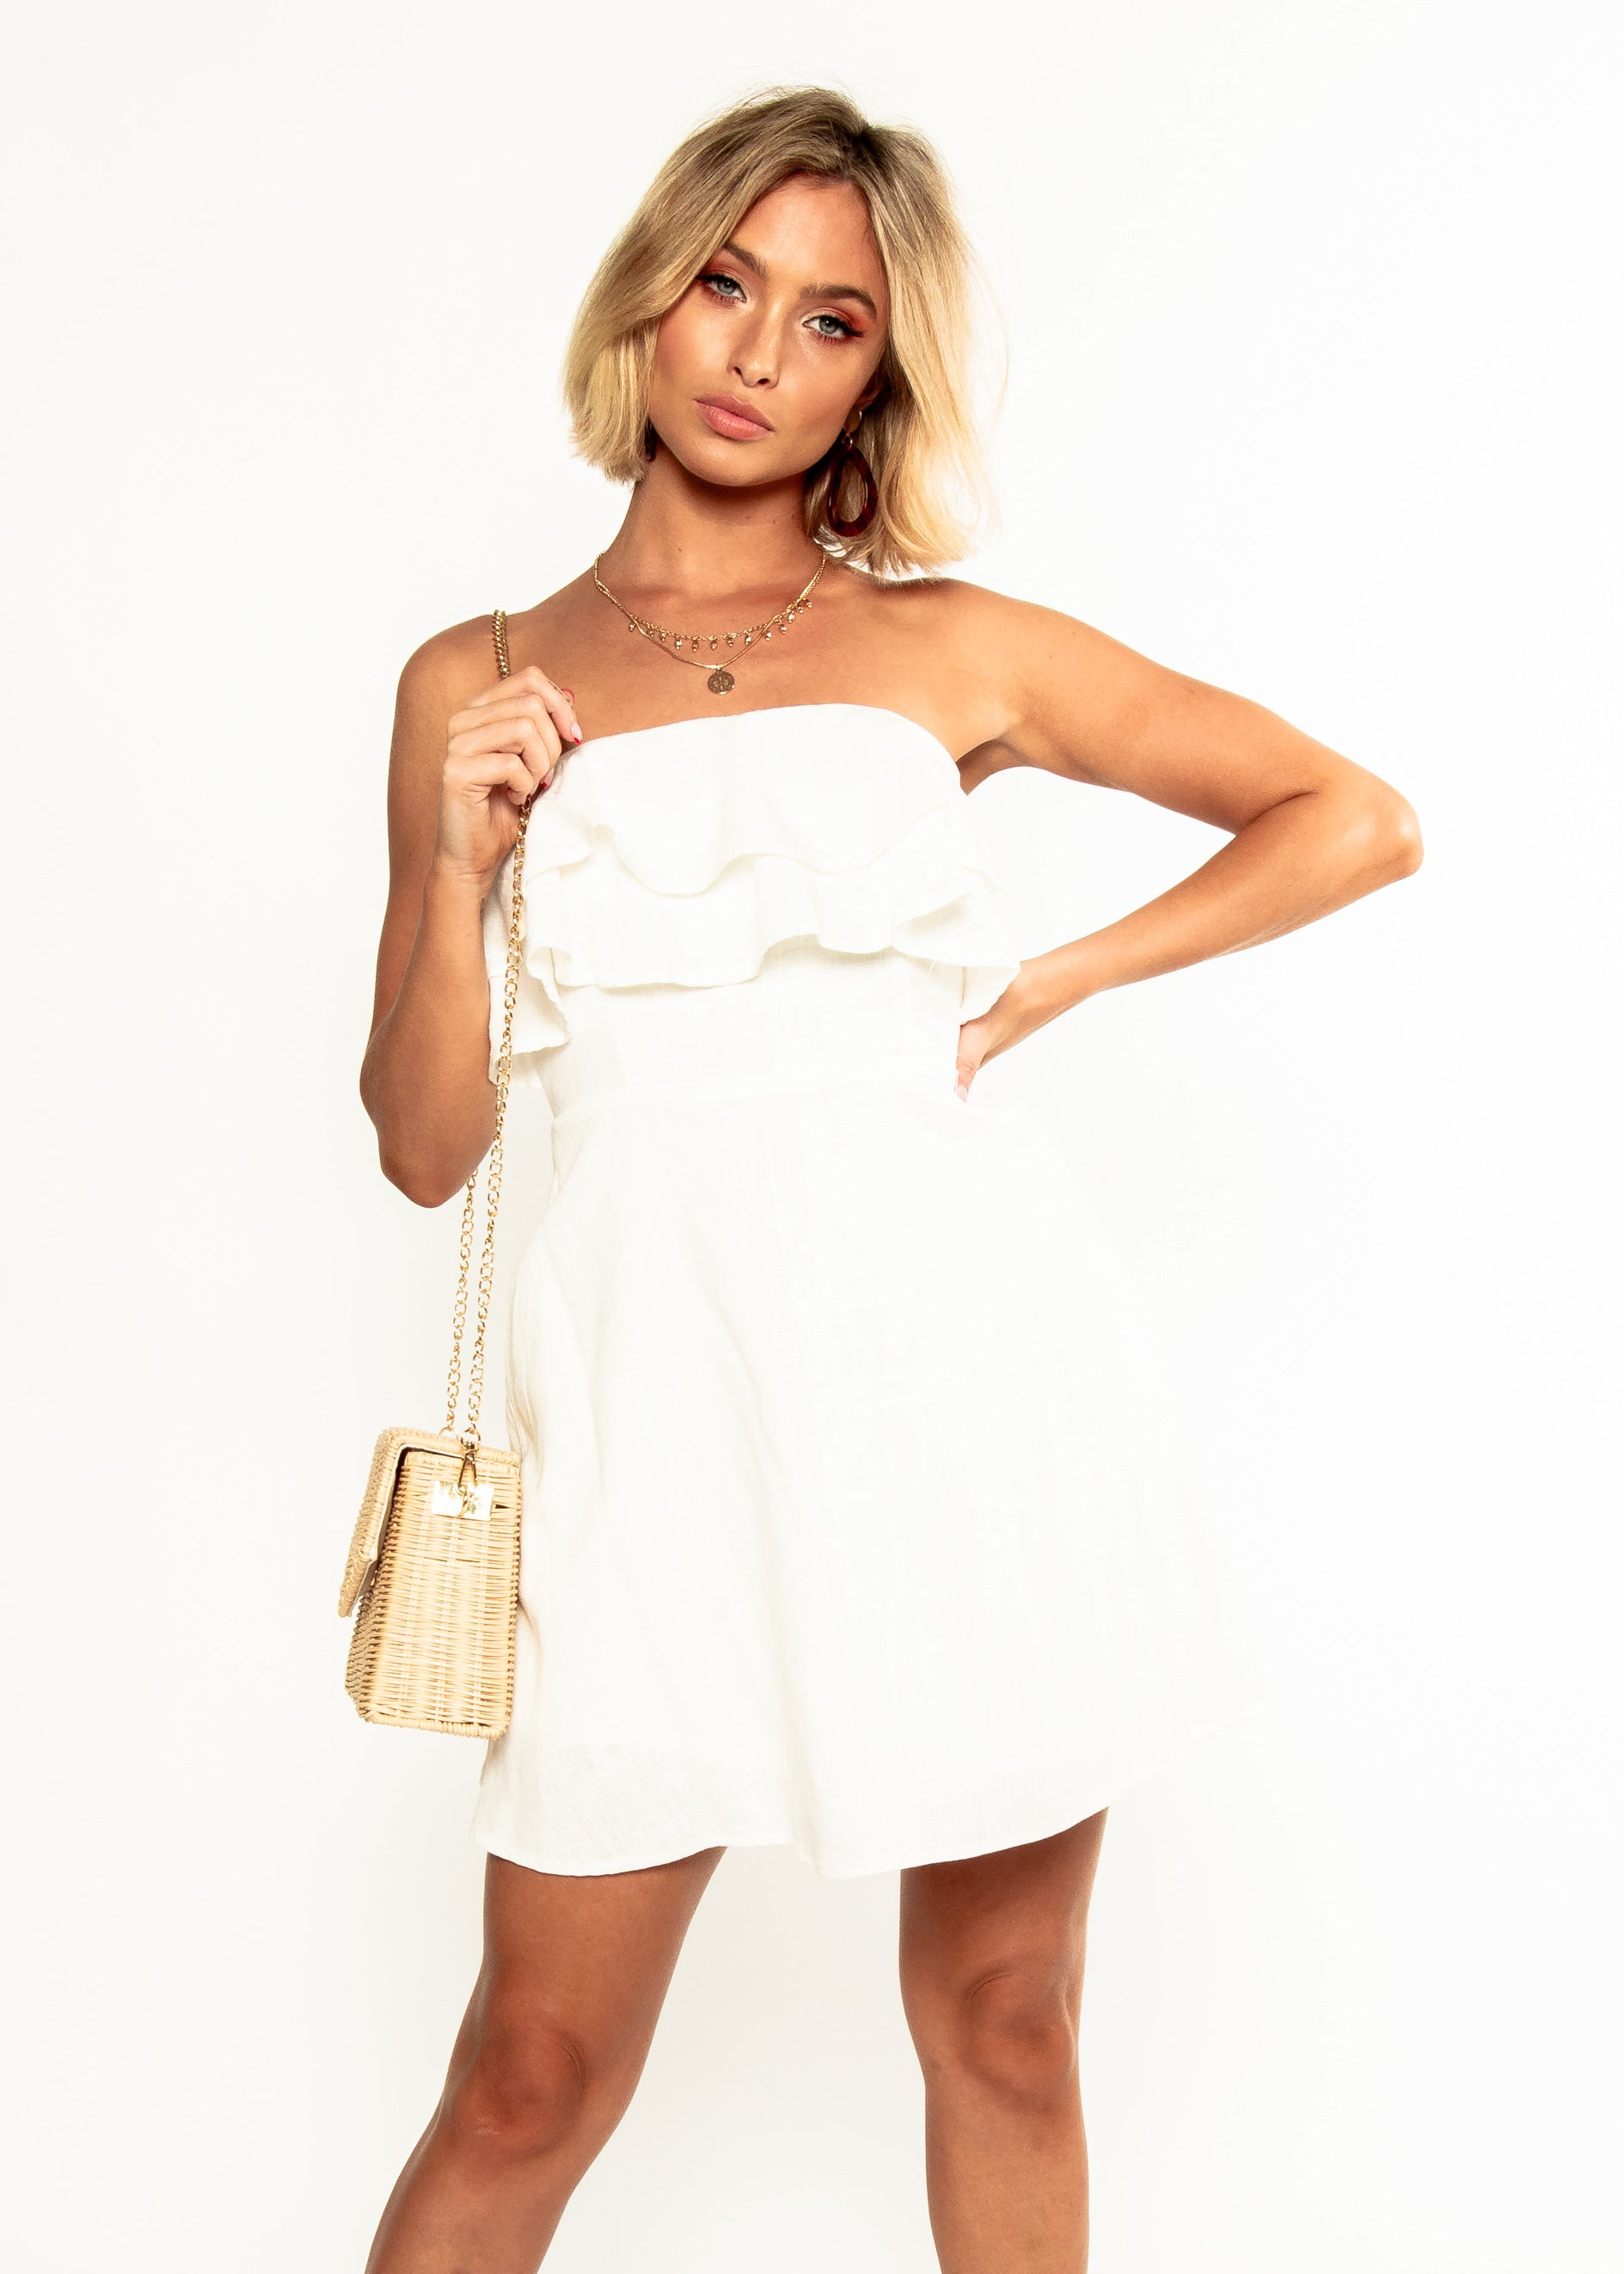 Nevaeh Linen Strapless Dress - White